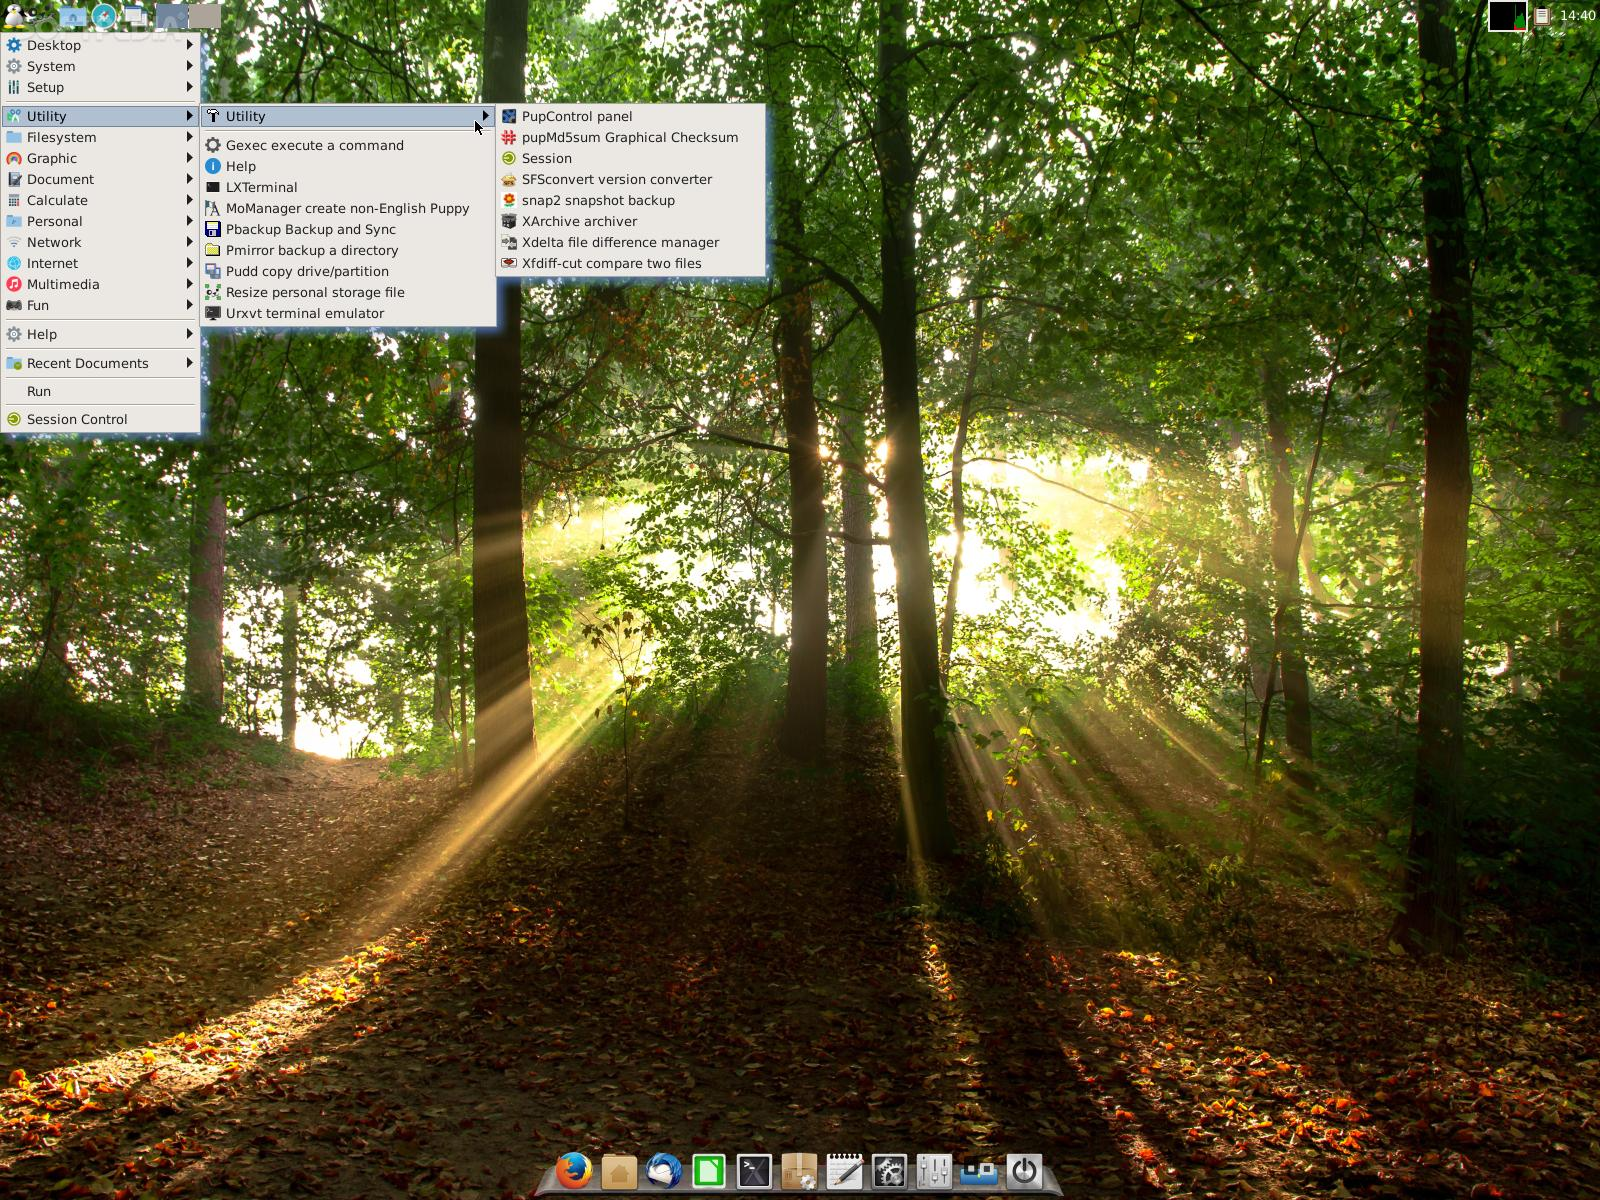 Simplicity Linux 16 04 Alpha 2 Now Ready for Testing